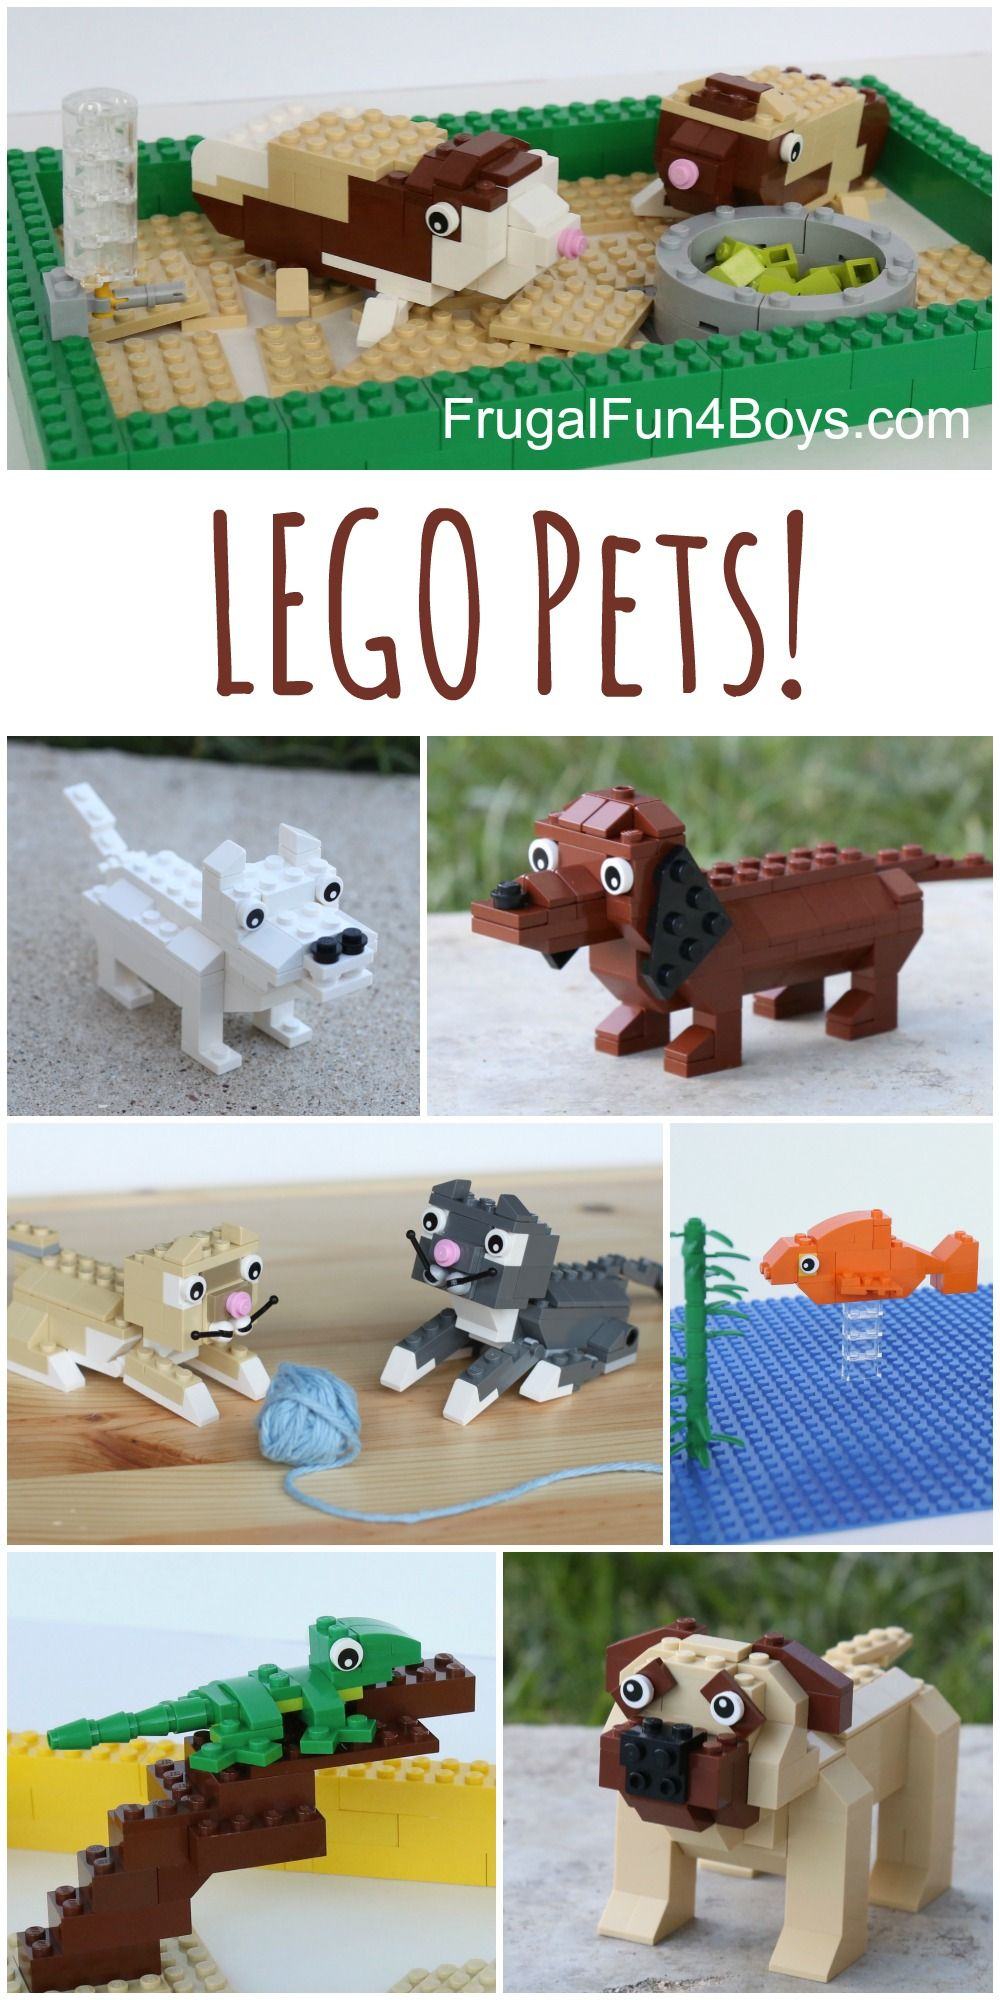 Lego Pets Building Instructions For Dogs Cats Guinea